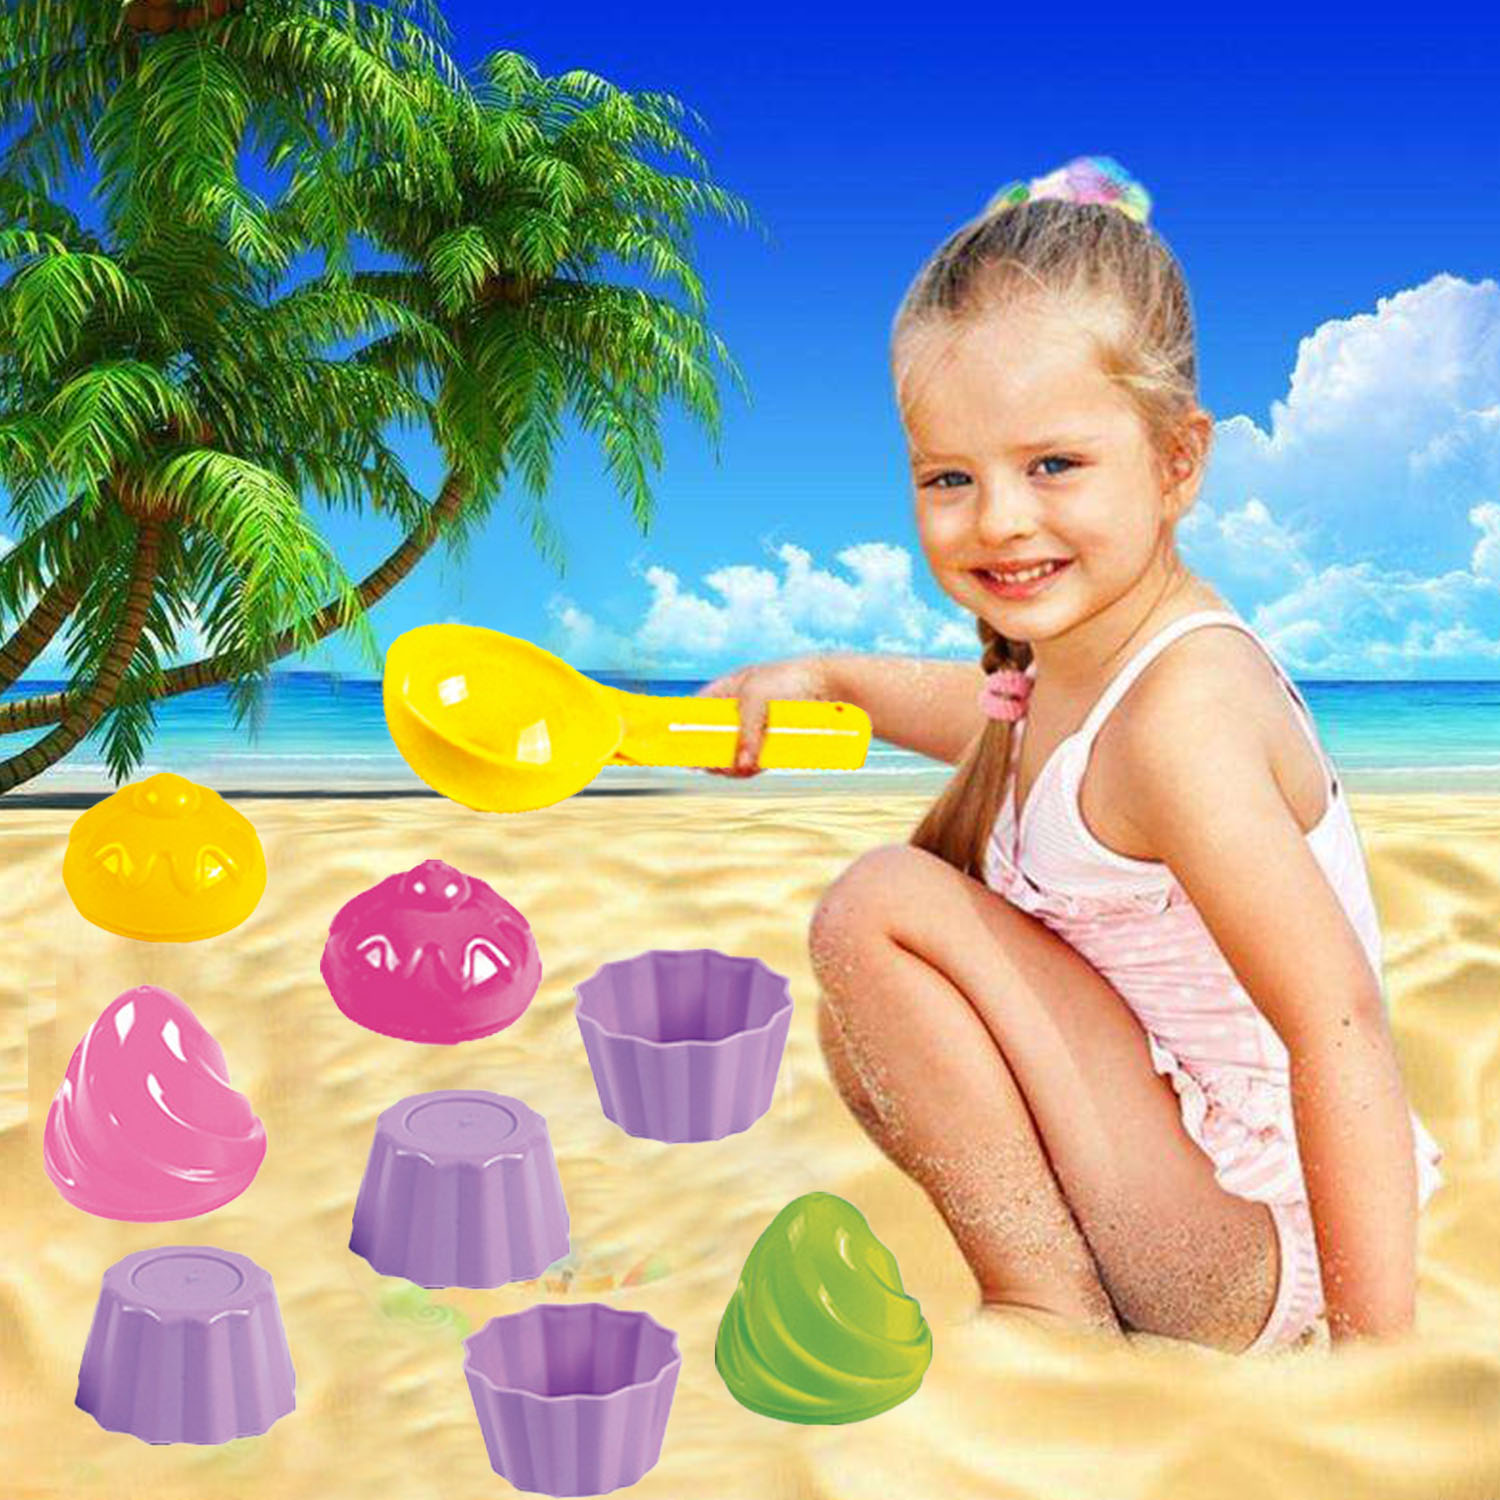 9PCS Kawaii Ice Cream Cake Mold Summer Beach Sand Game Toys Mold Kit For Kids Children Summer Outdoor Funny Beach Sand Mold Toys